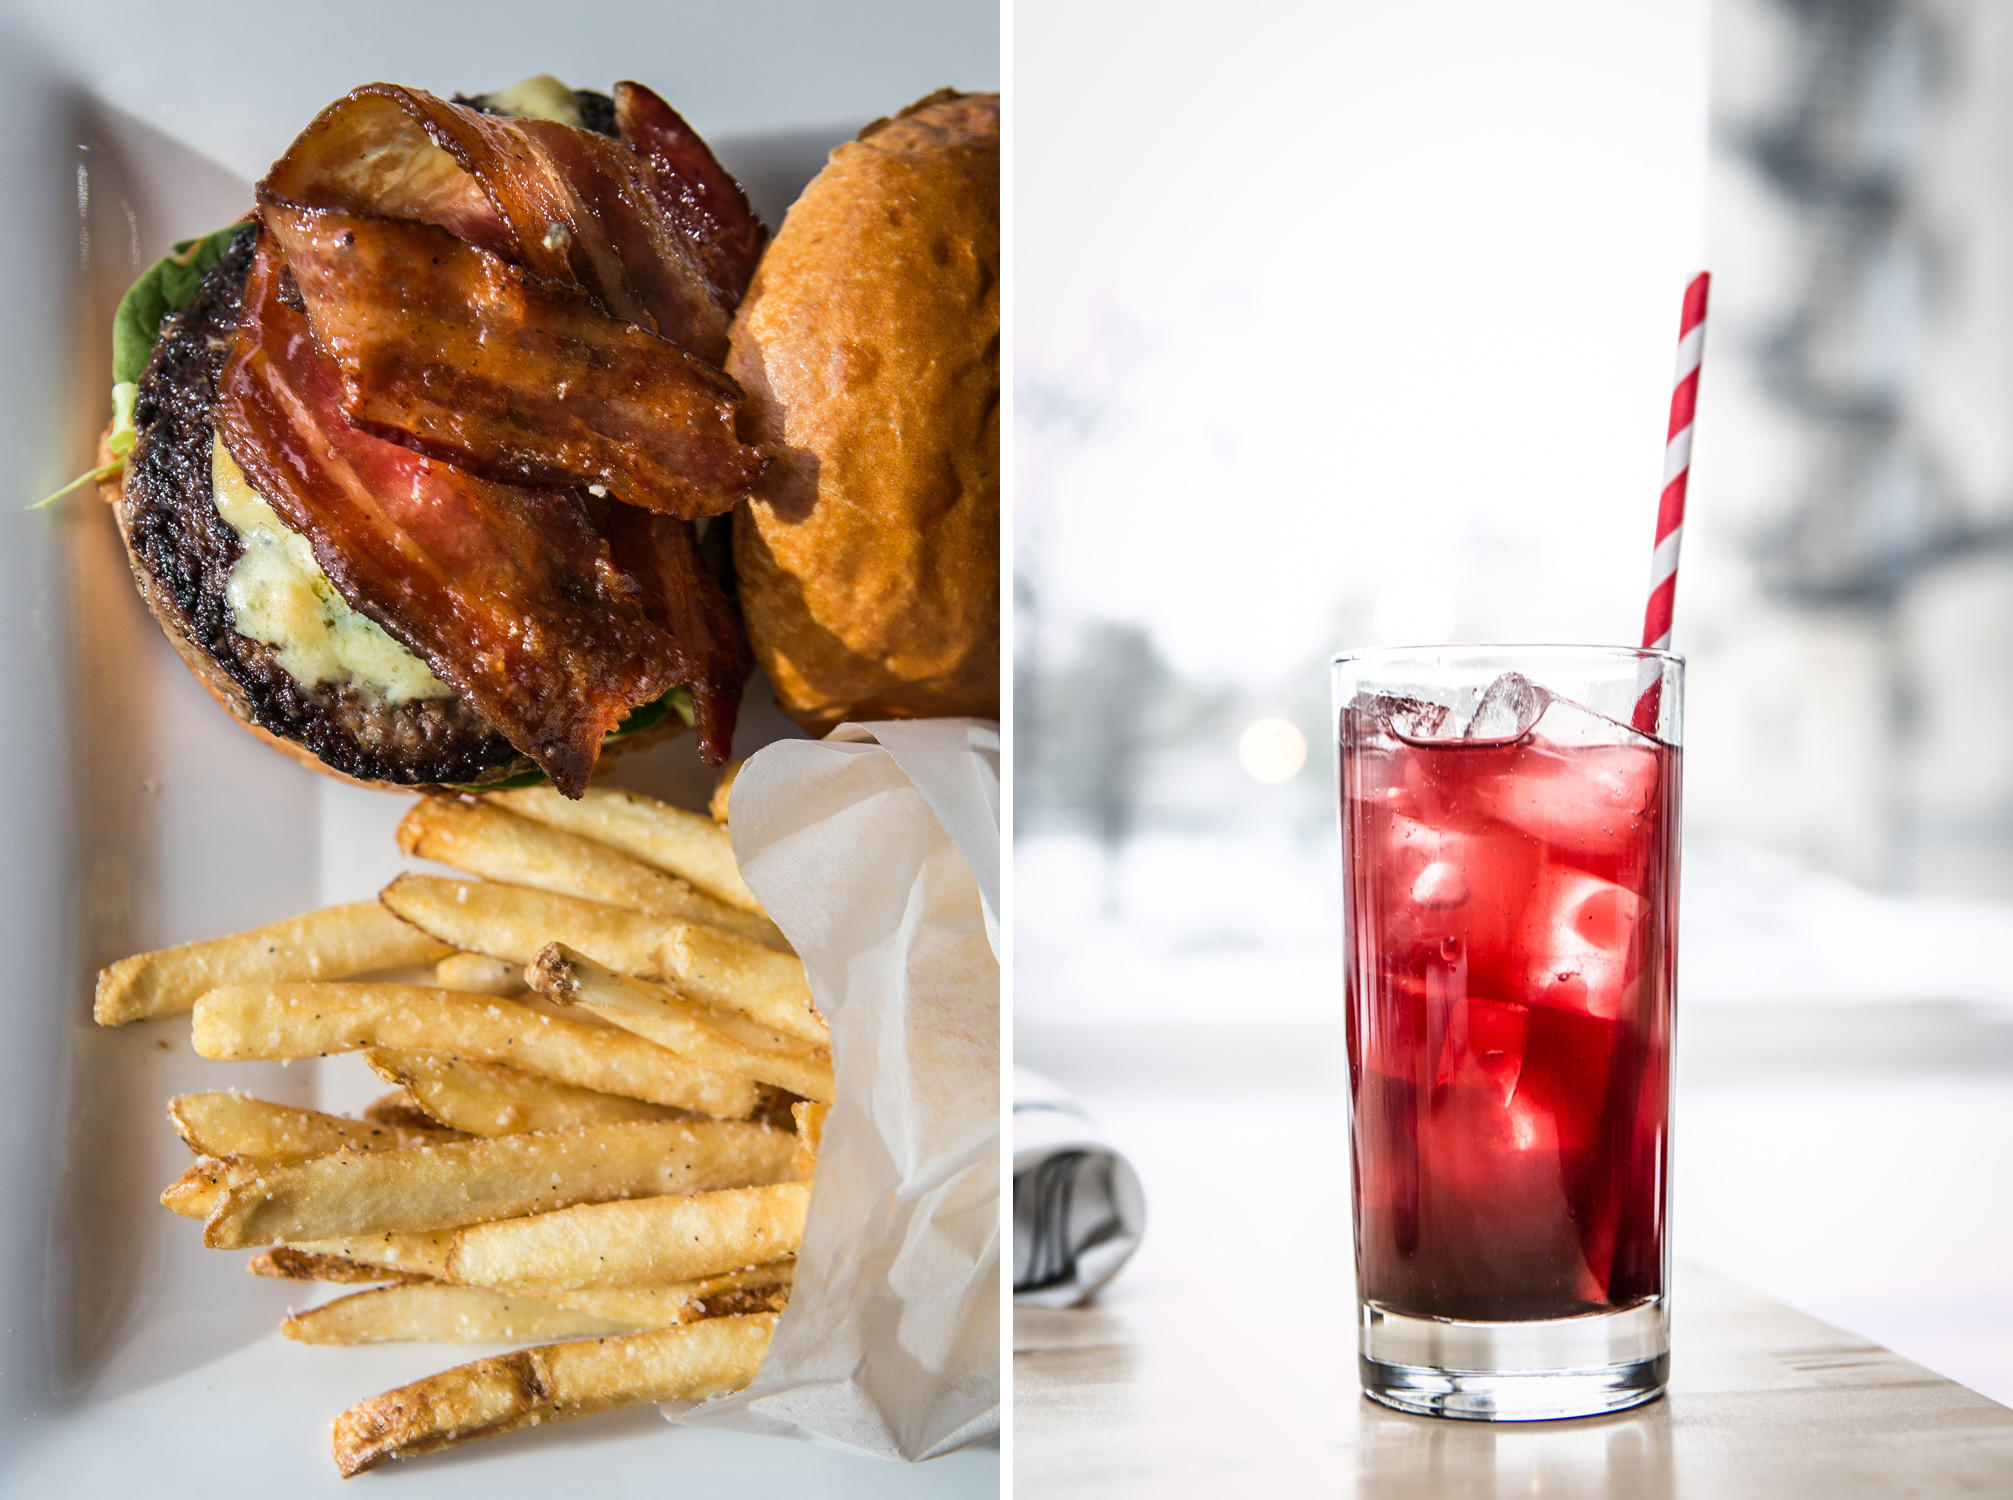 The Amish B&B burger with fries and Dark Cherry spritz at Spritz Burger